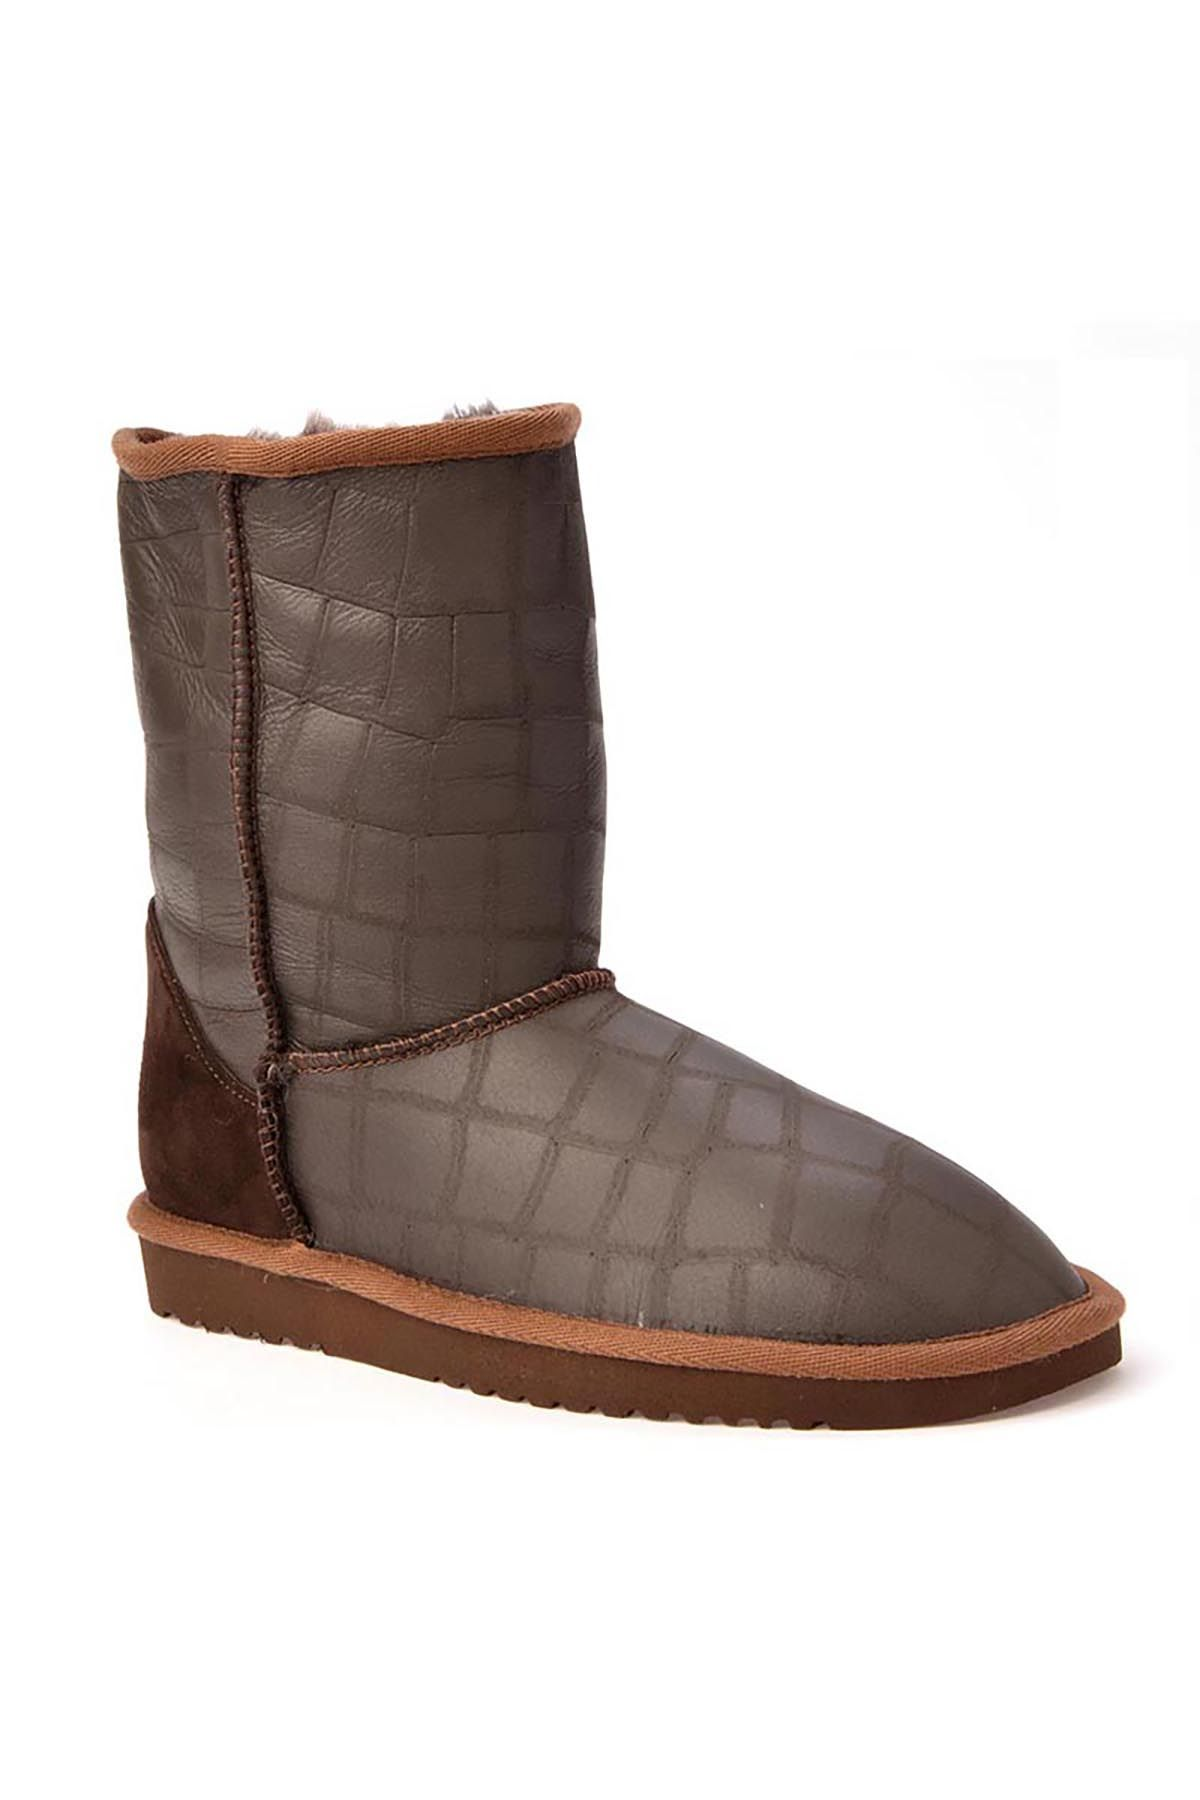 Cool Moon Classic Women Boots From Genuine Leather With Square Pattern Brown